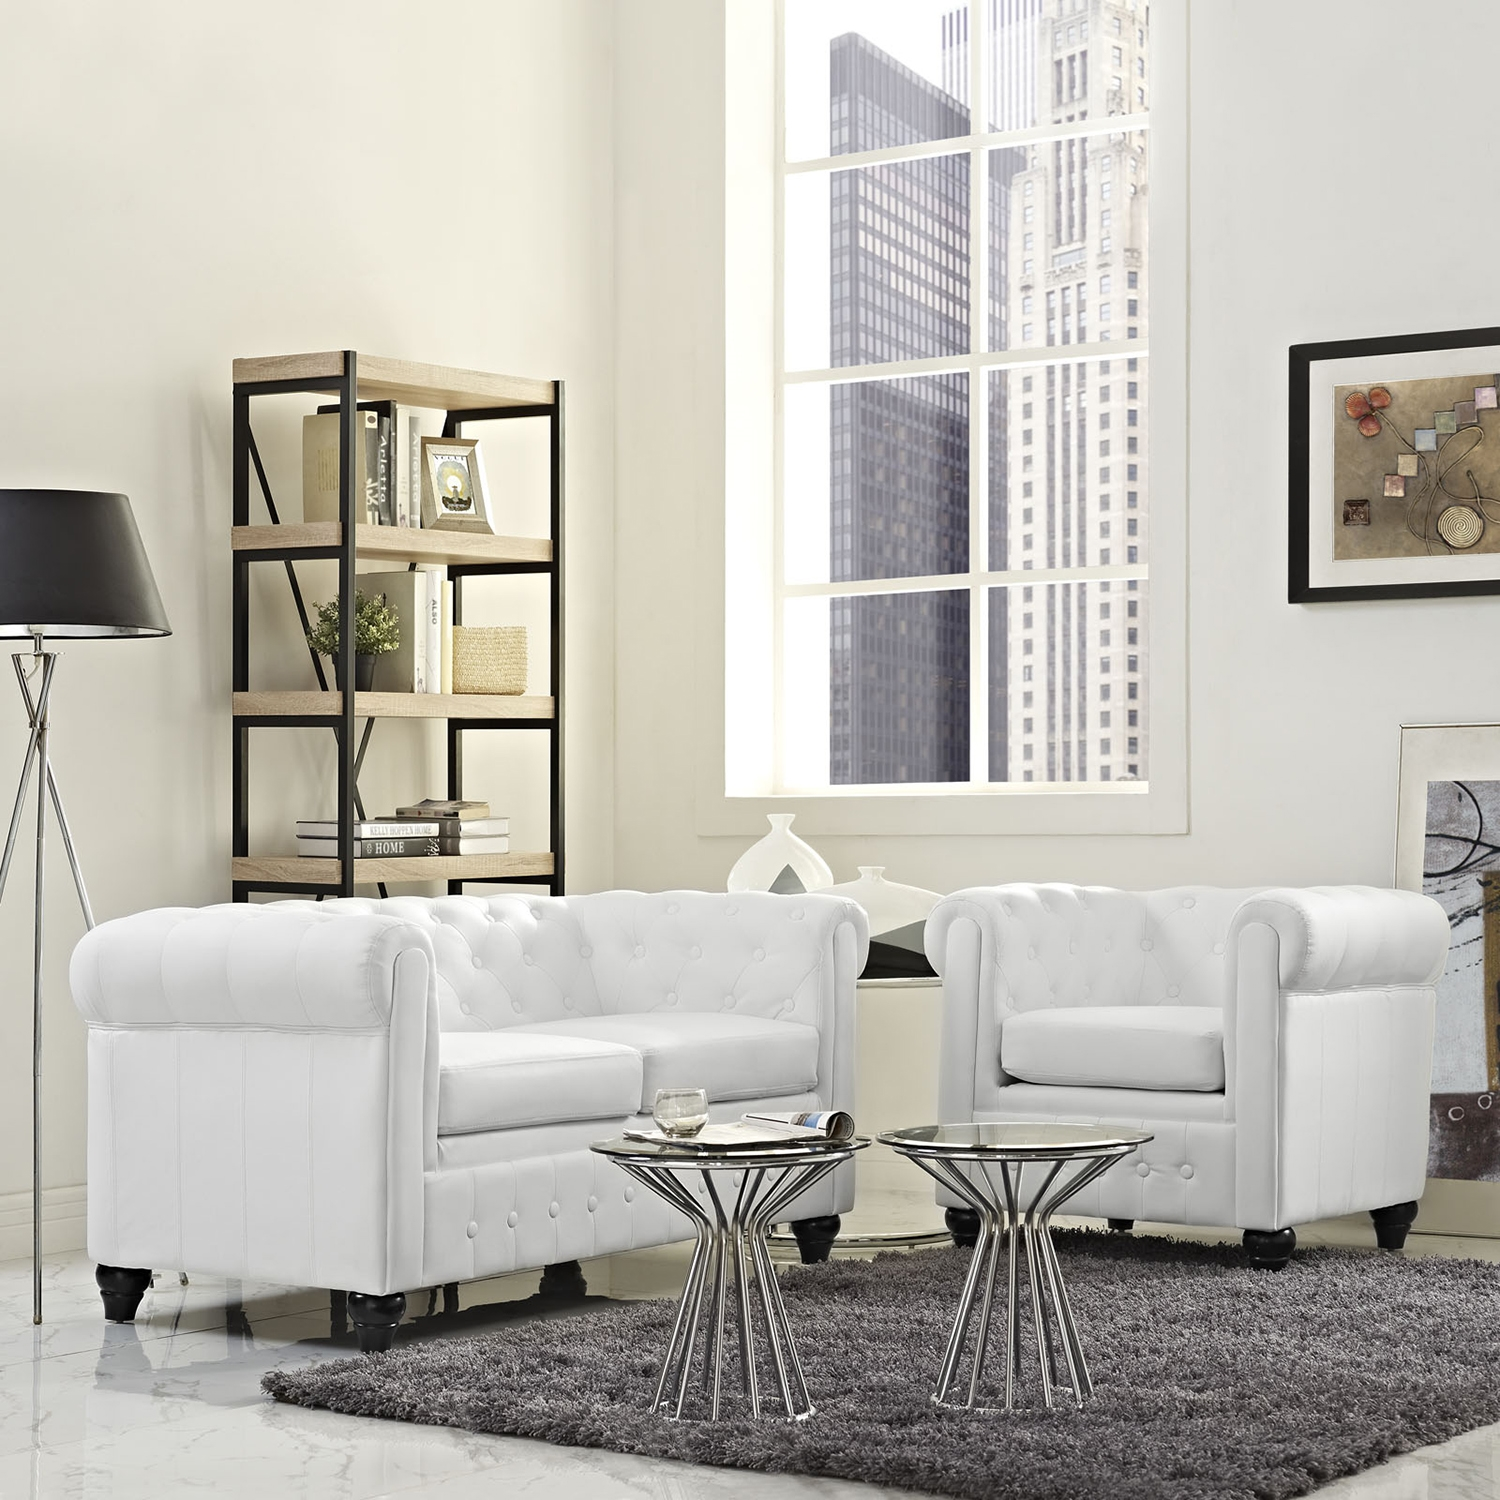 Earl 2 Pieces Faux Leather Sofa Set - White, Tufted - EEI-1773-WHI-SET